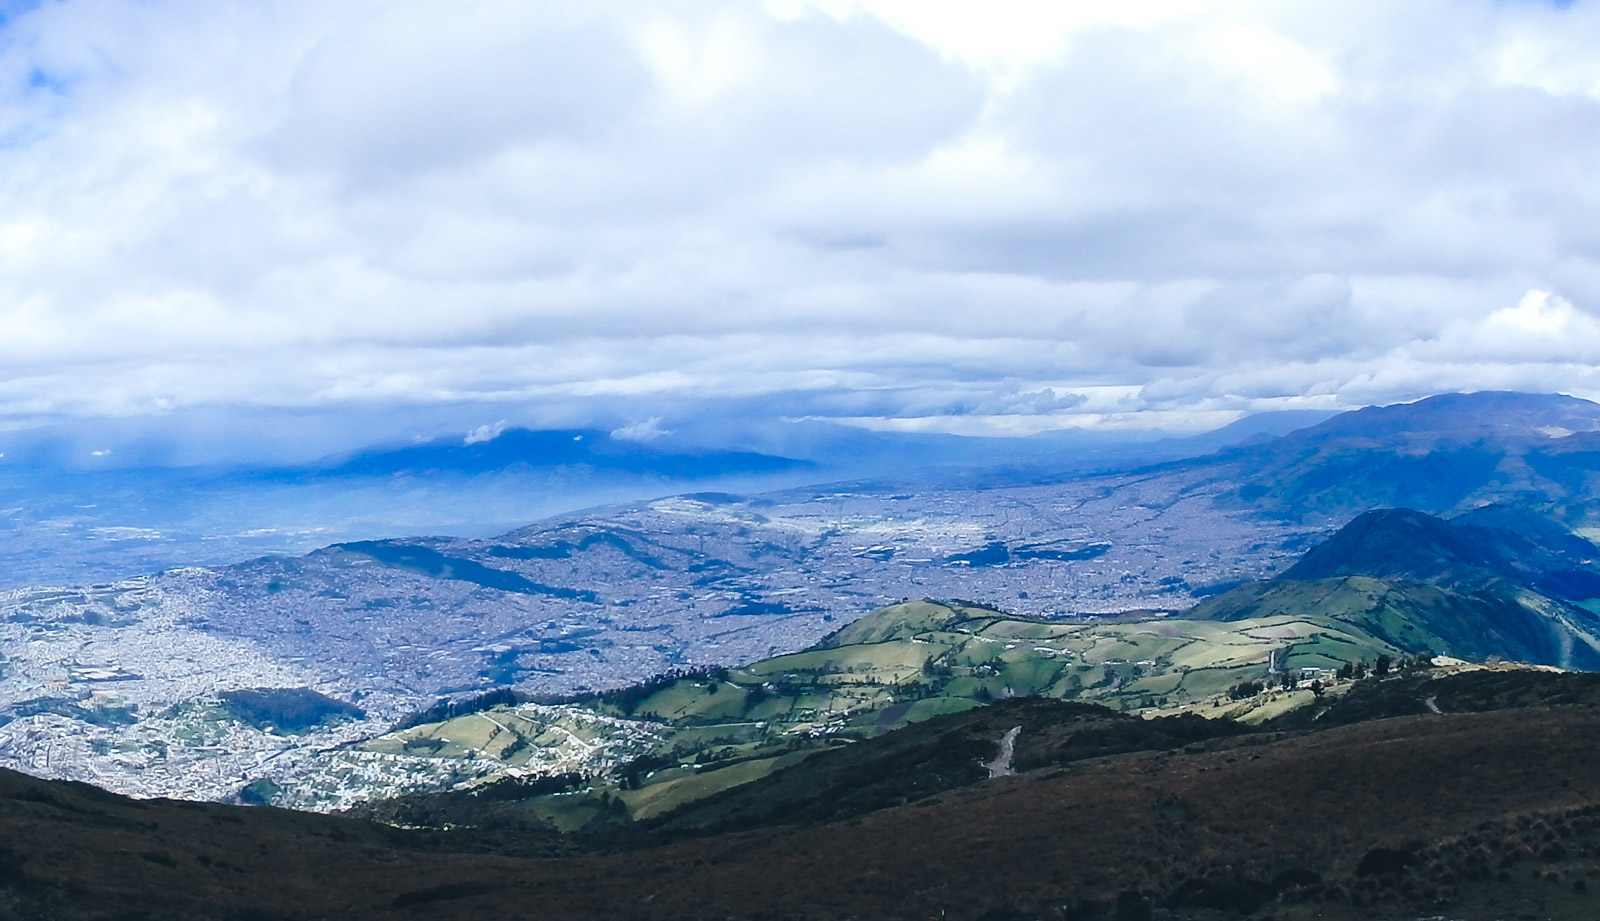 Travel to Medellin from Ecuador on the cheap